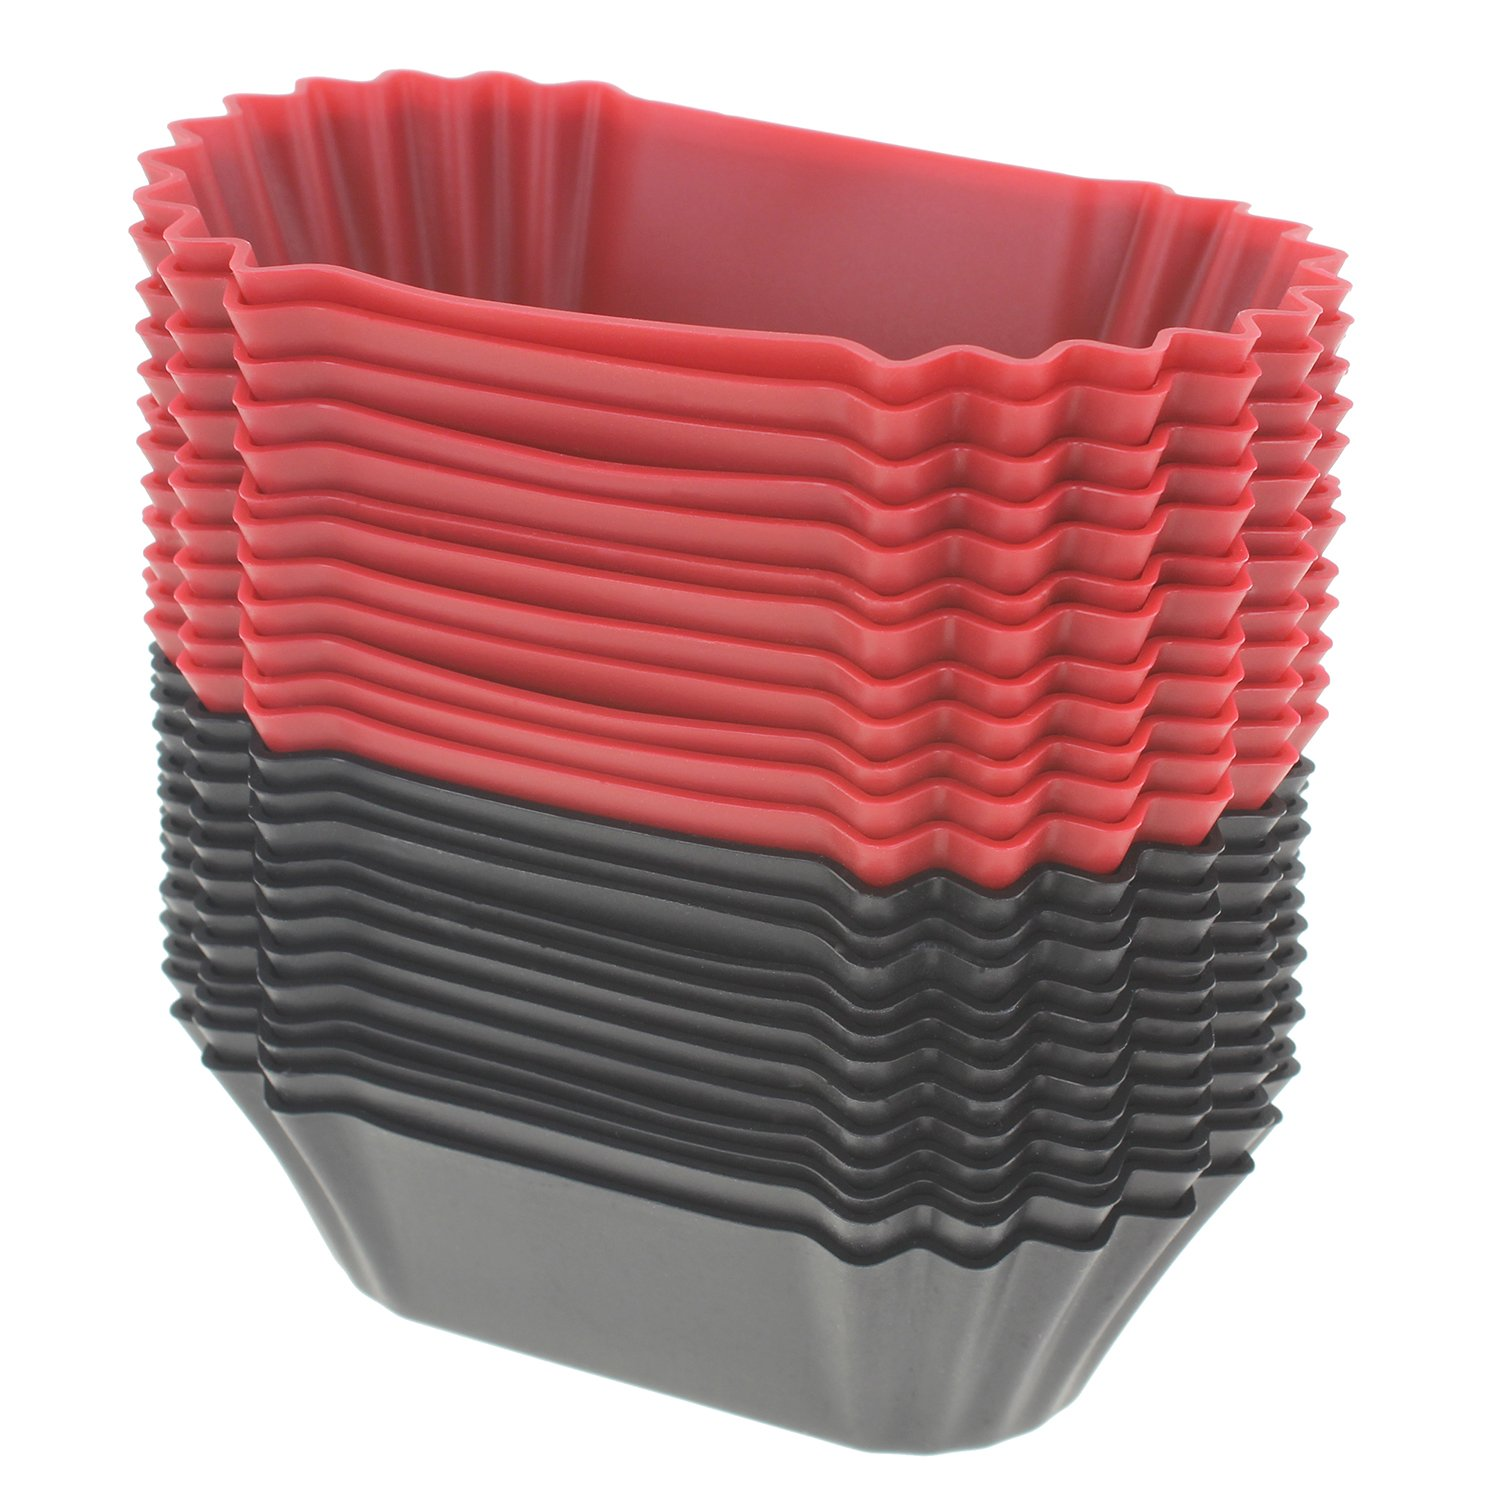 Freshware CB-320RB 12-Pack Silicone Jumbo Round Reusable Cupcake and Muffin Baking Cup Black and Red Colors